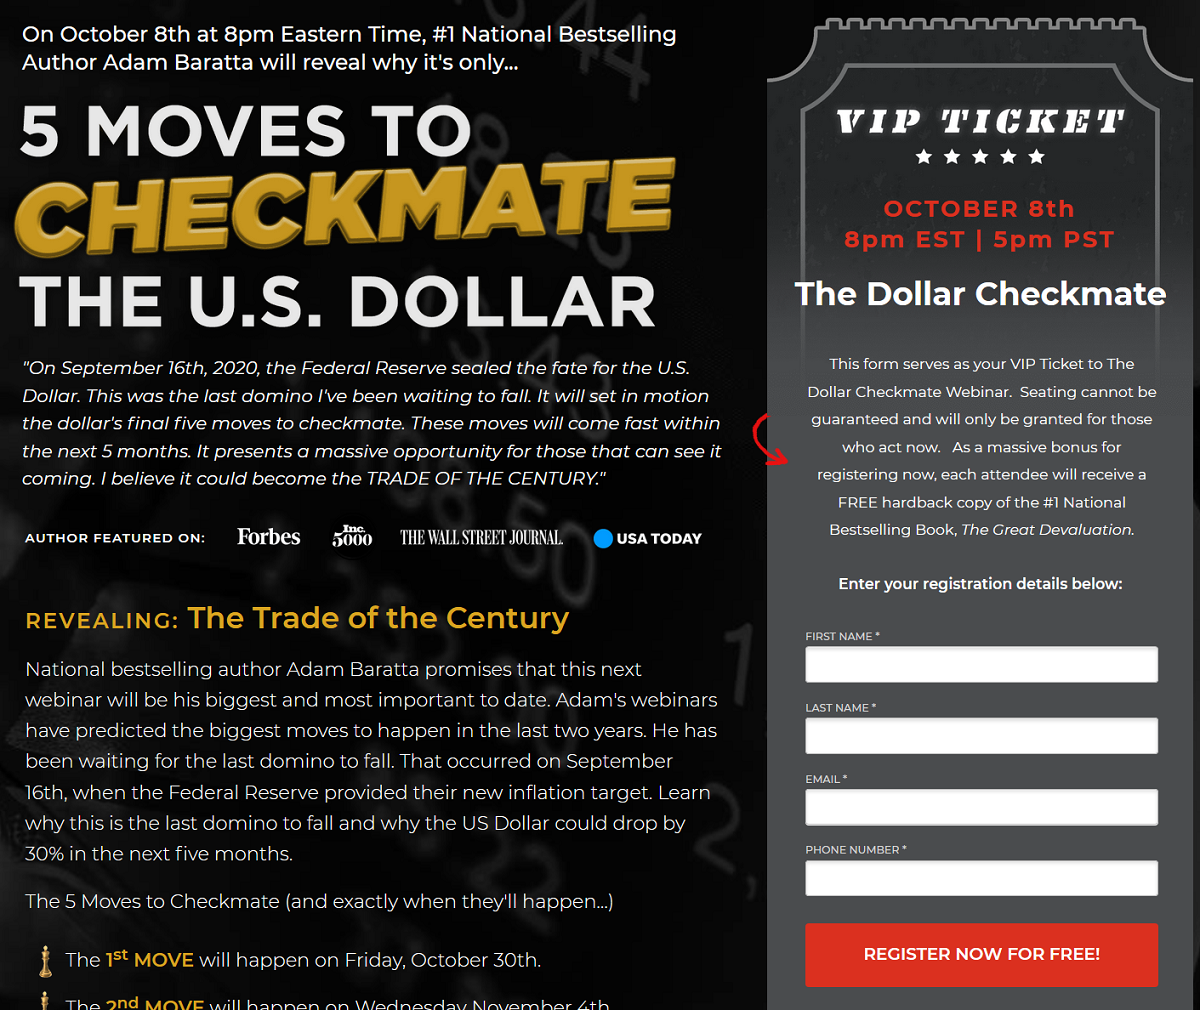 The 5 Moves to Checkmate the U.S. Dollar Summit – Is Adam Baratta Event Legit?